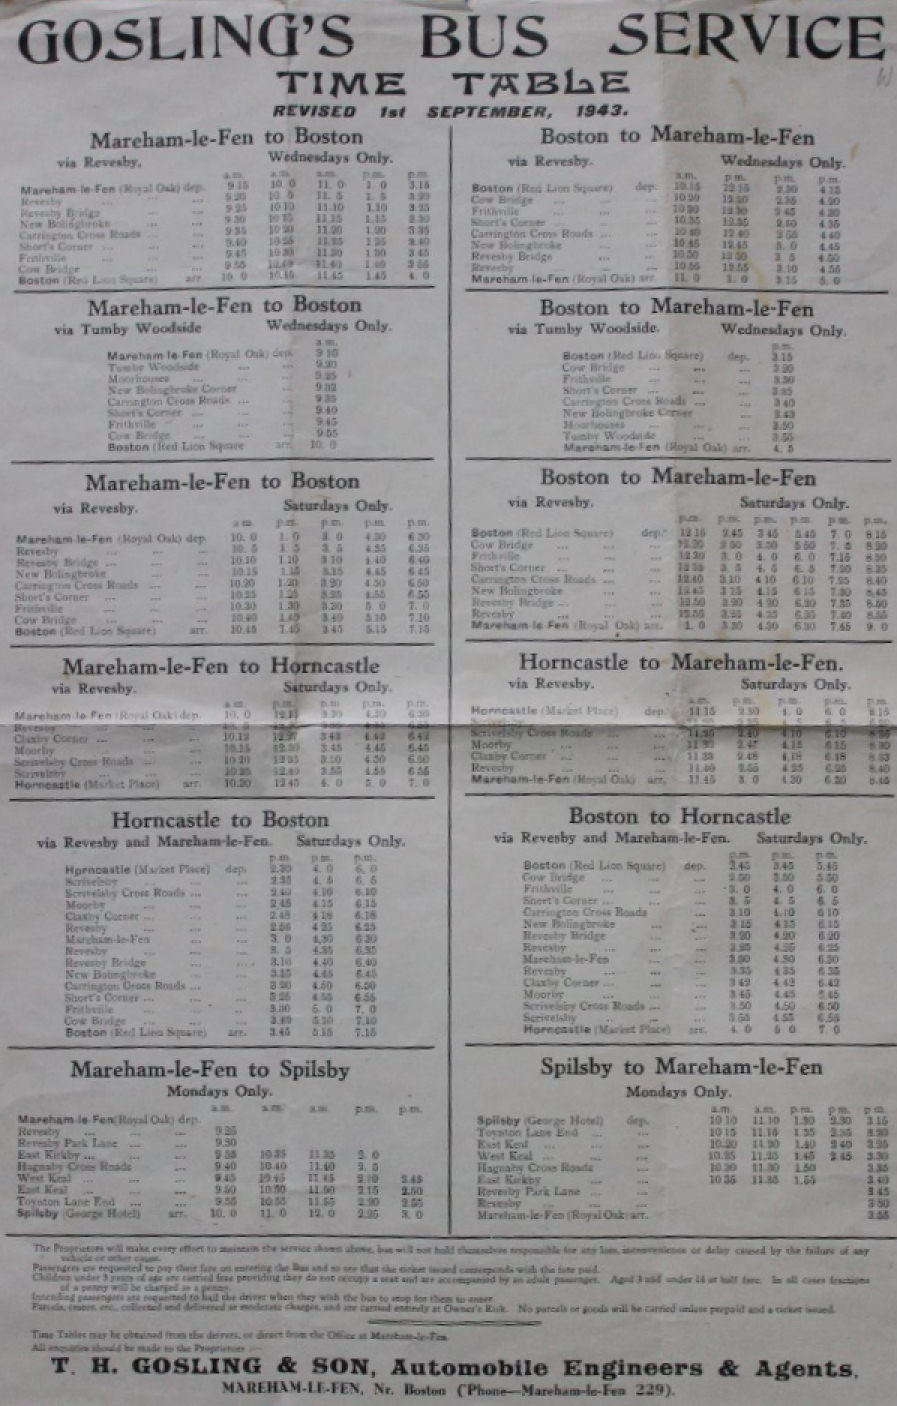 Gosling 1943 timetable